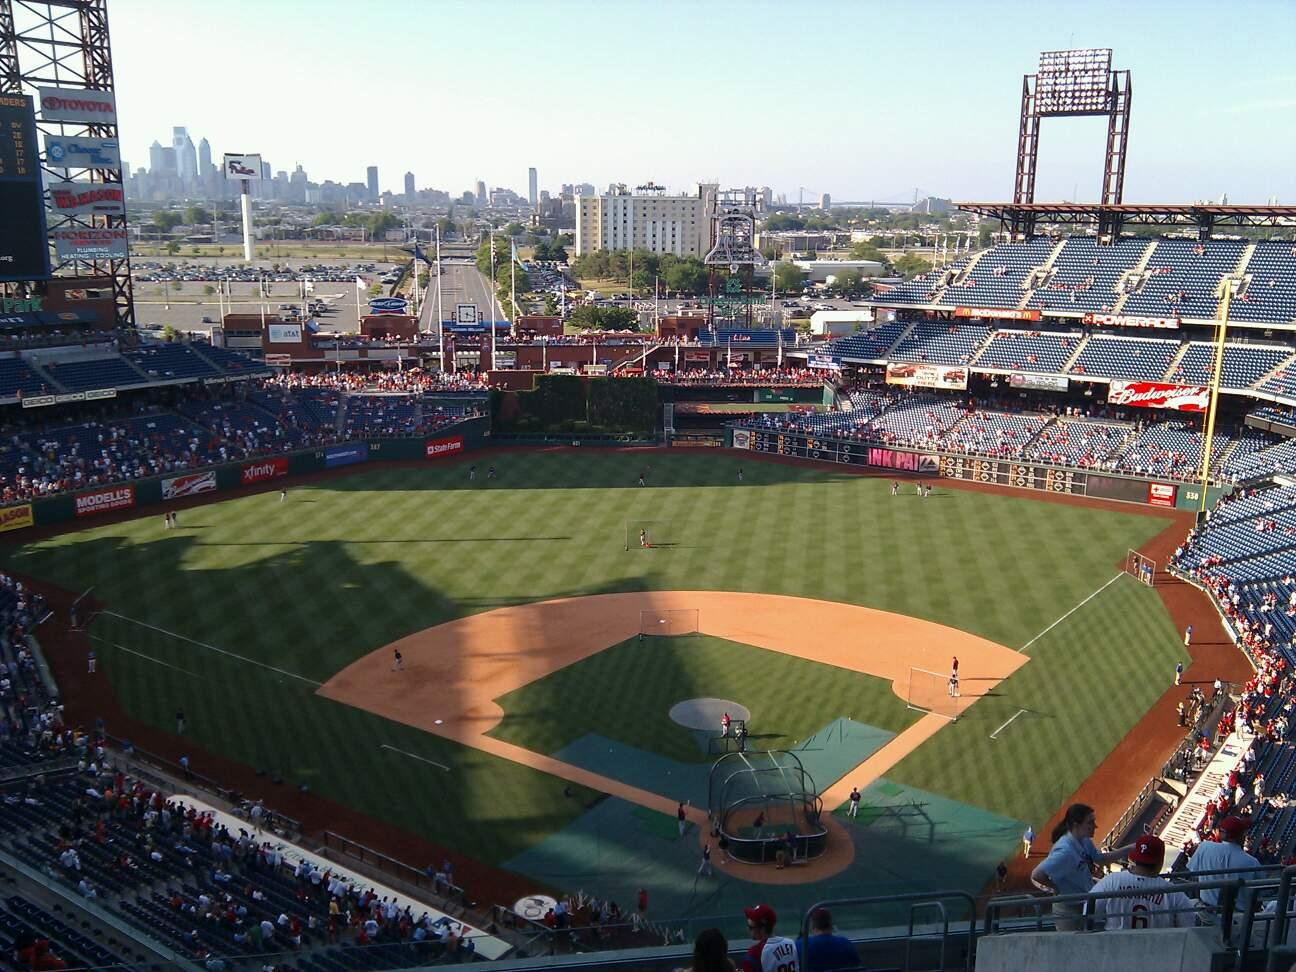 Citizens Bank Park Section 422 Row 14 Seat 8